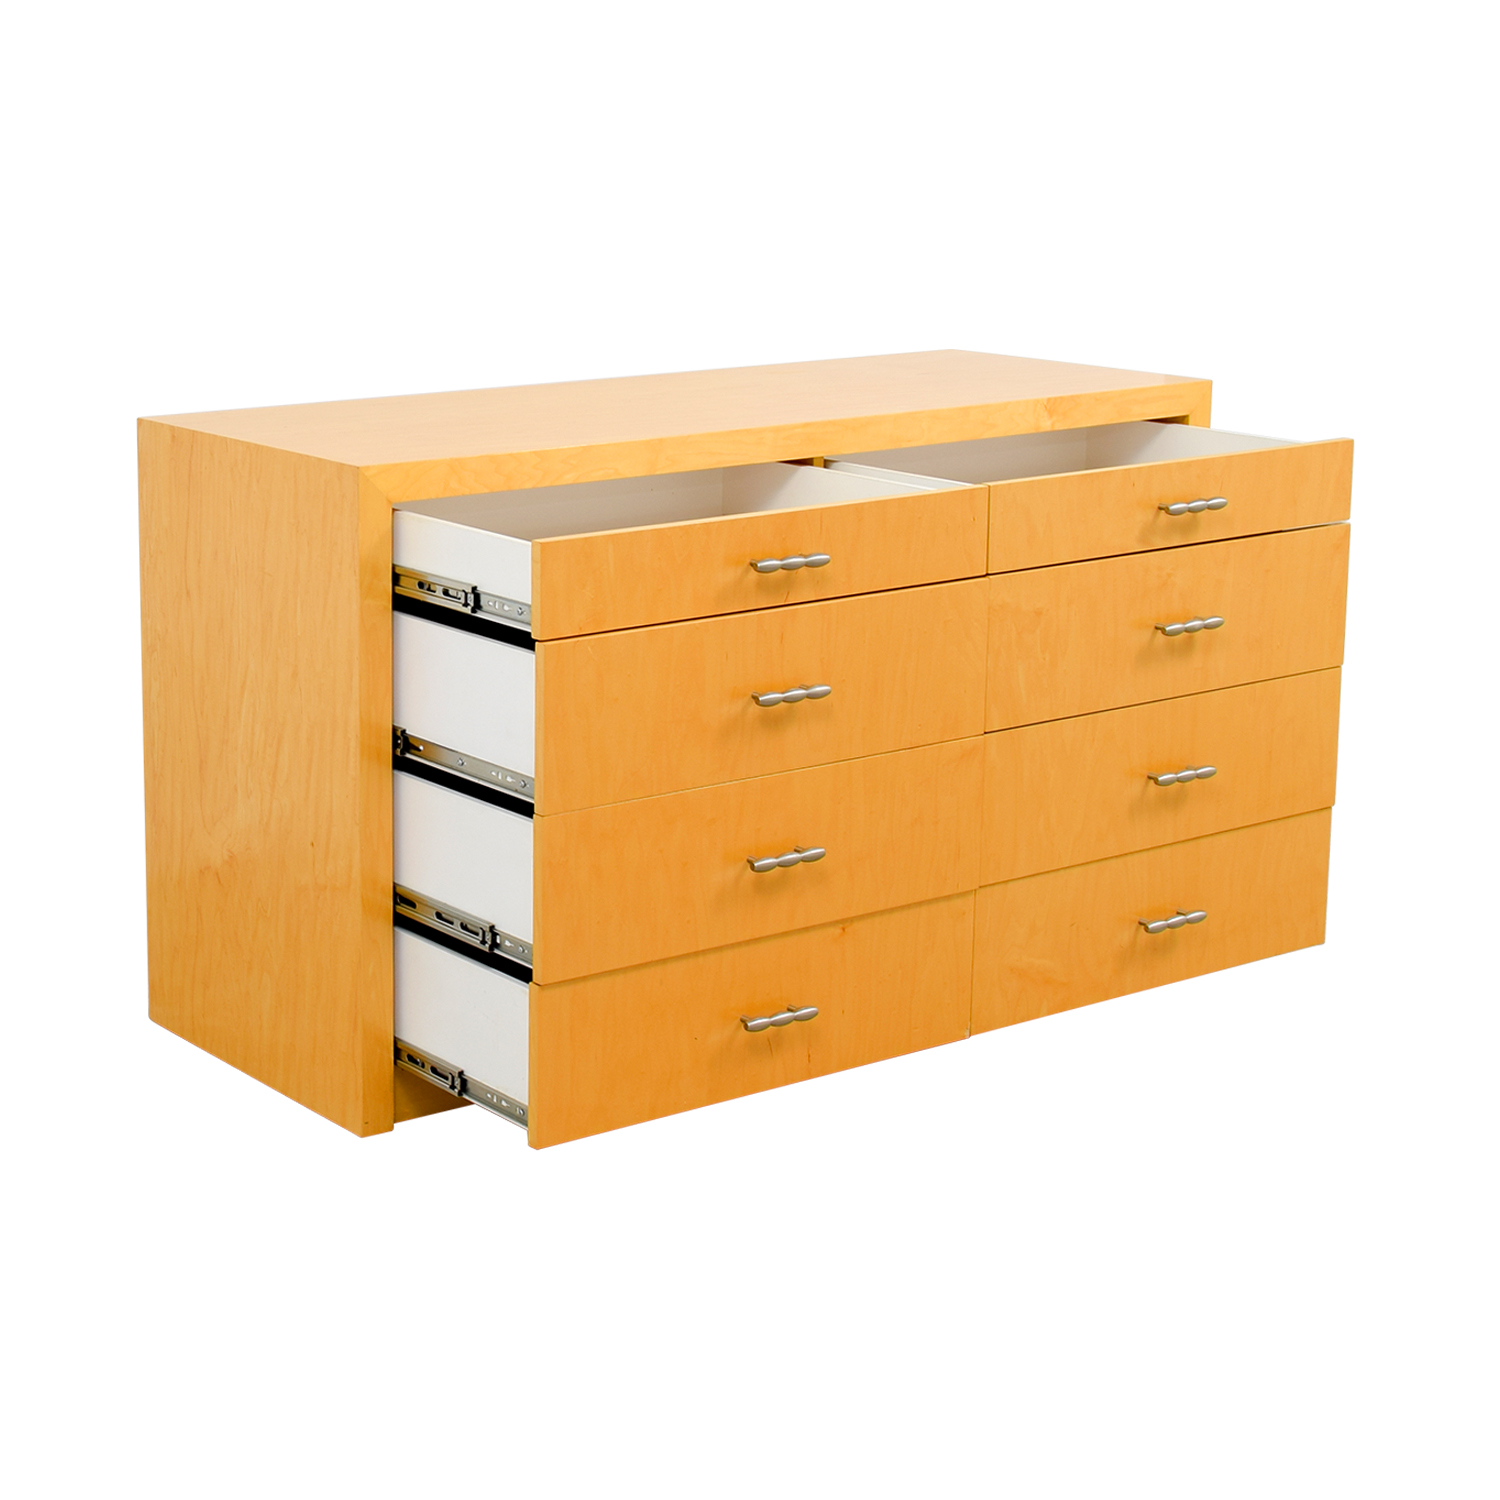 Manhattan Cabinetry Maple Eight-Drawer Dresser / Storage